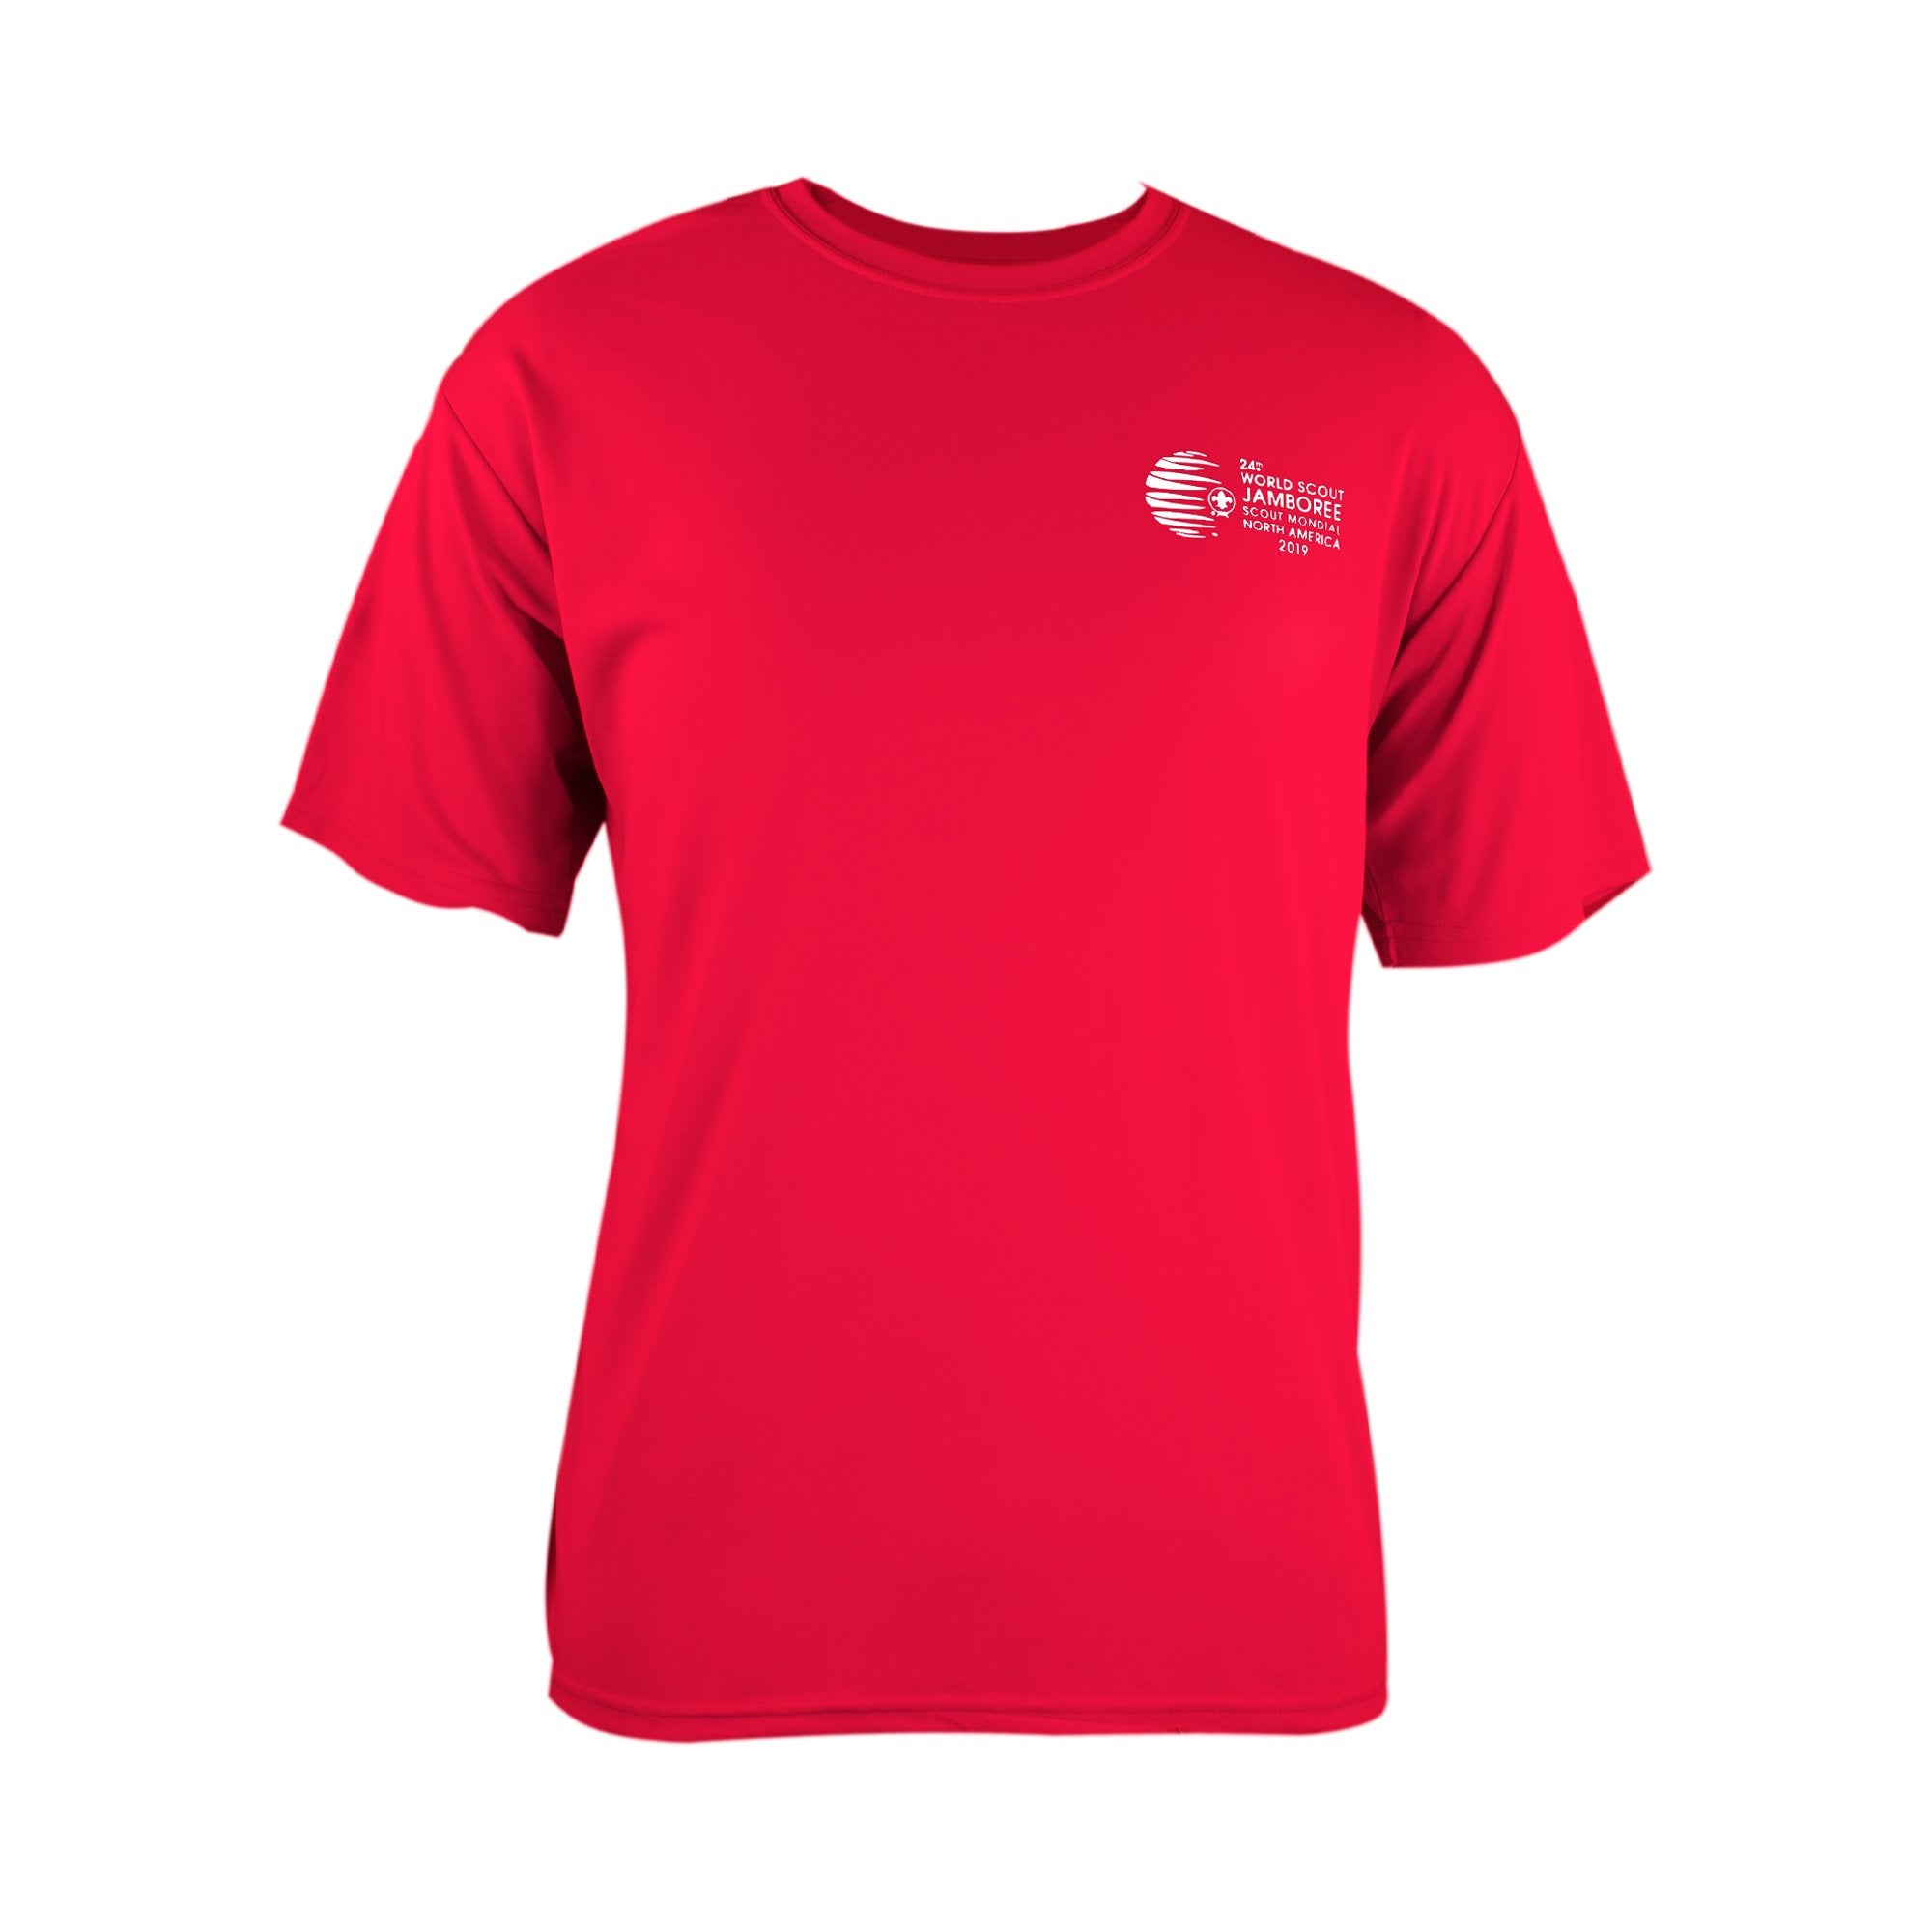 WJ19 Performance Short Sleeved Tee